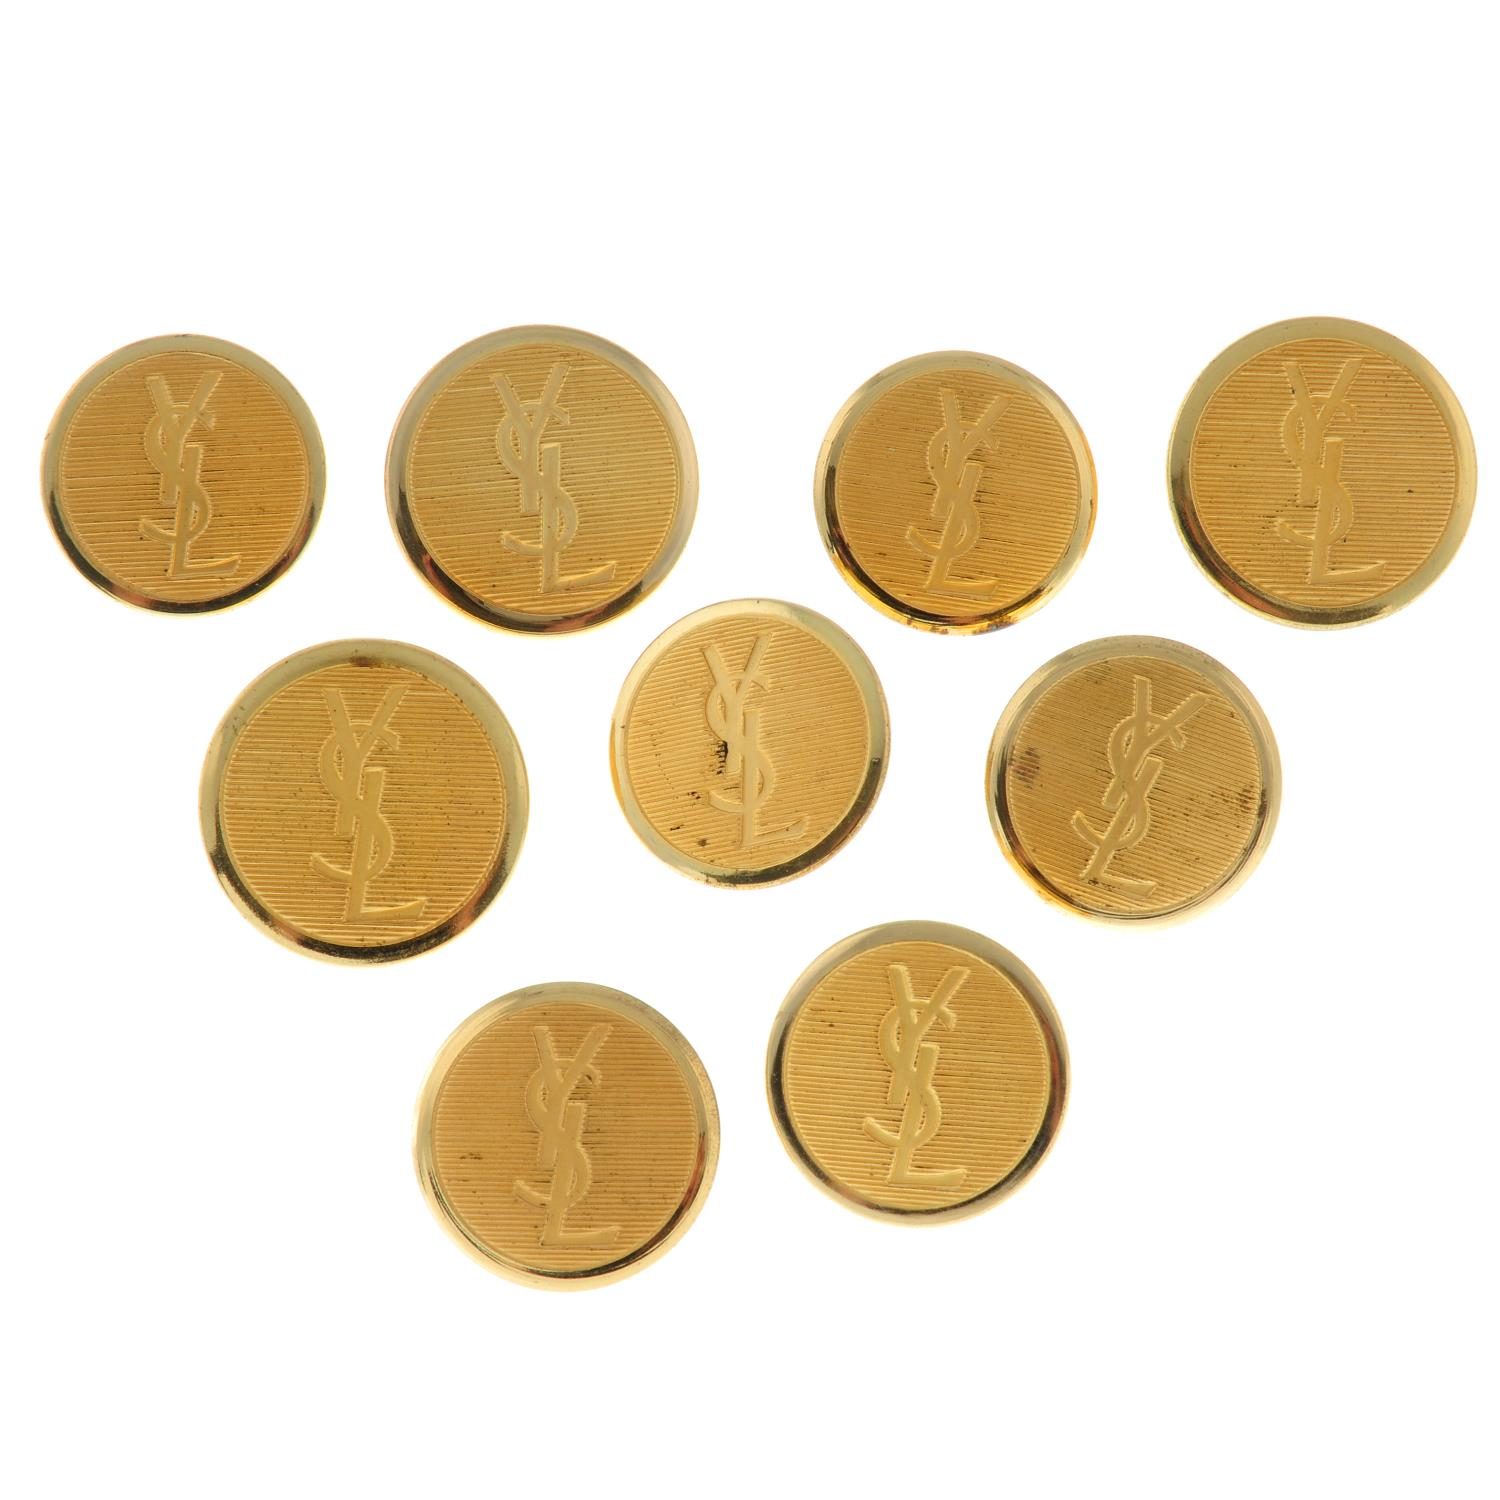 Nine textured monogram buttons, by Yves Saint Laurent.Lengths 2.7 and 3cms. - Image 2 of 3